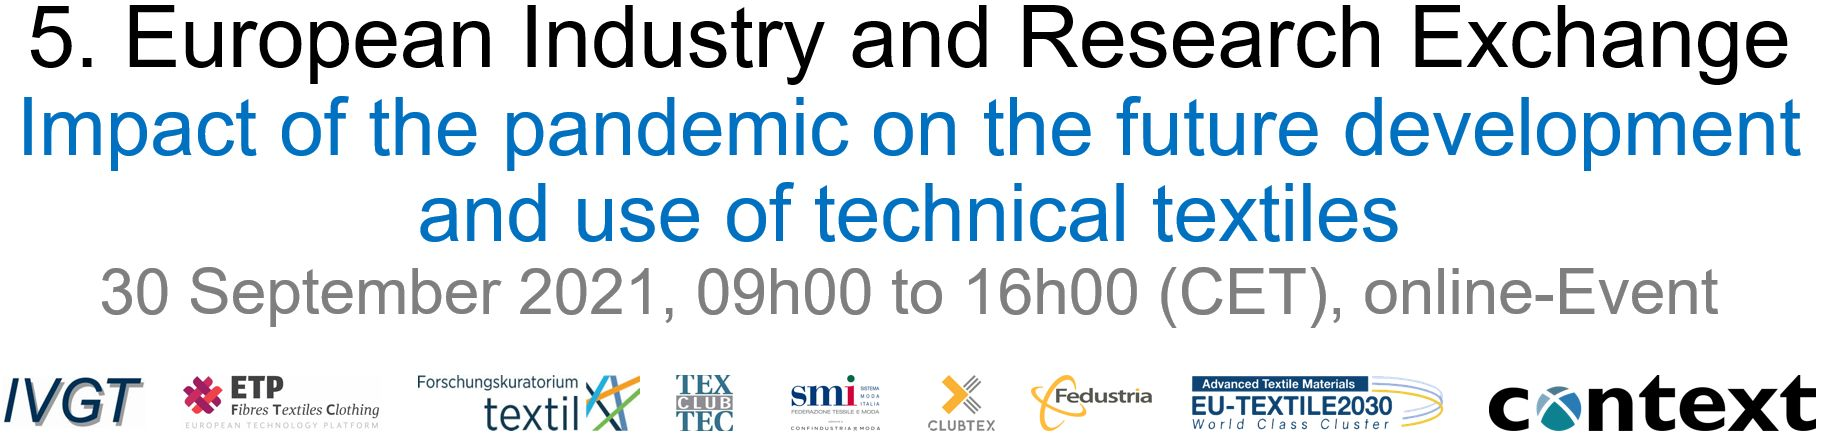 5th European Industry and Research Exchange for Technical Textile Processes and Applications